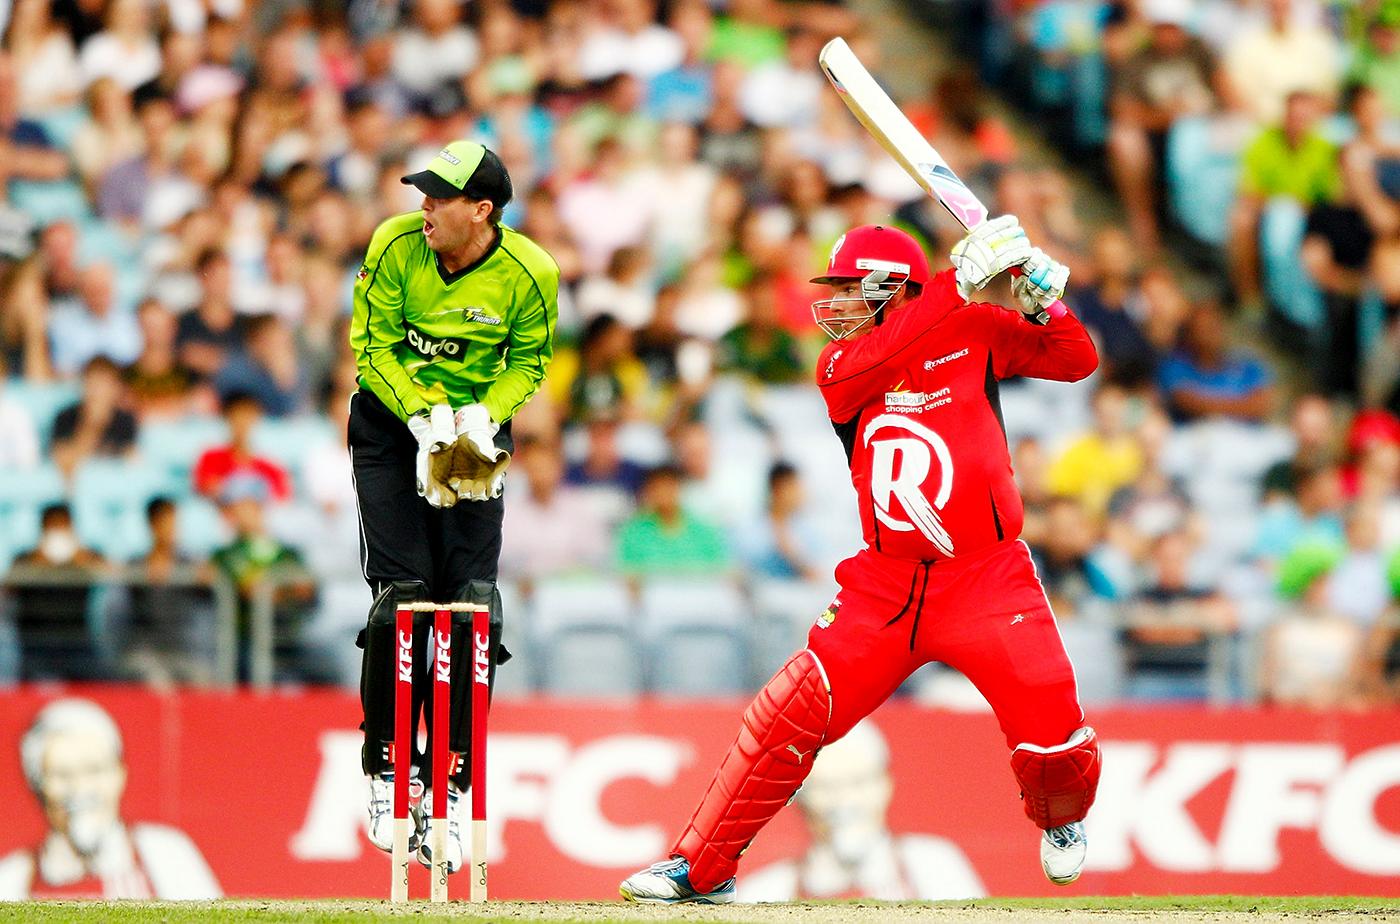 Renegade in red: Finch in the first season of the BBL